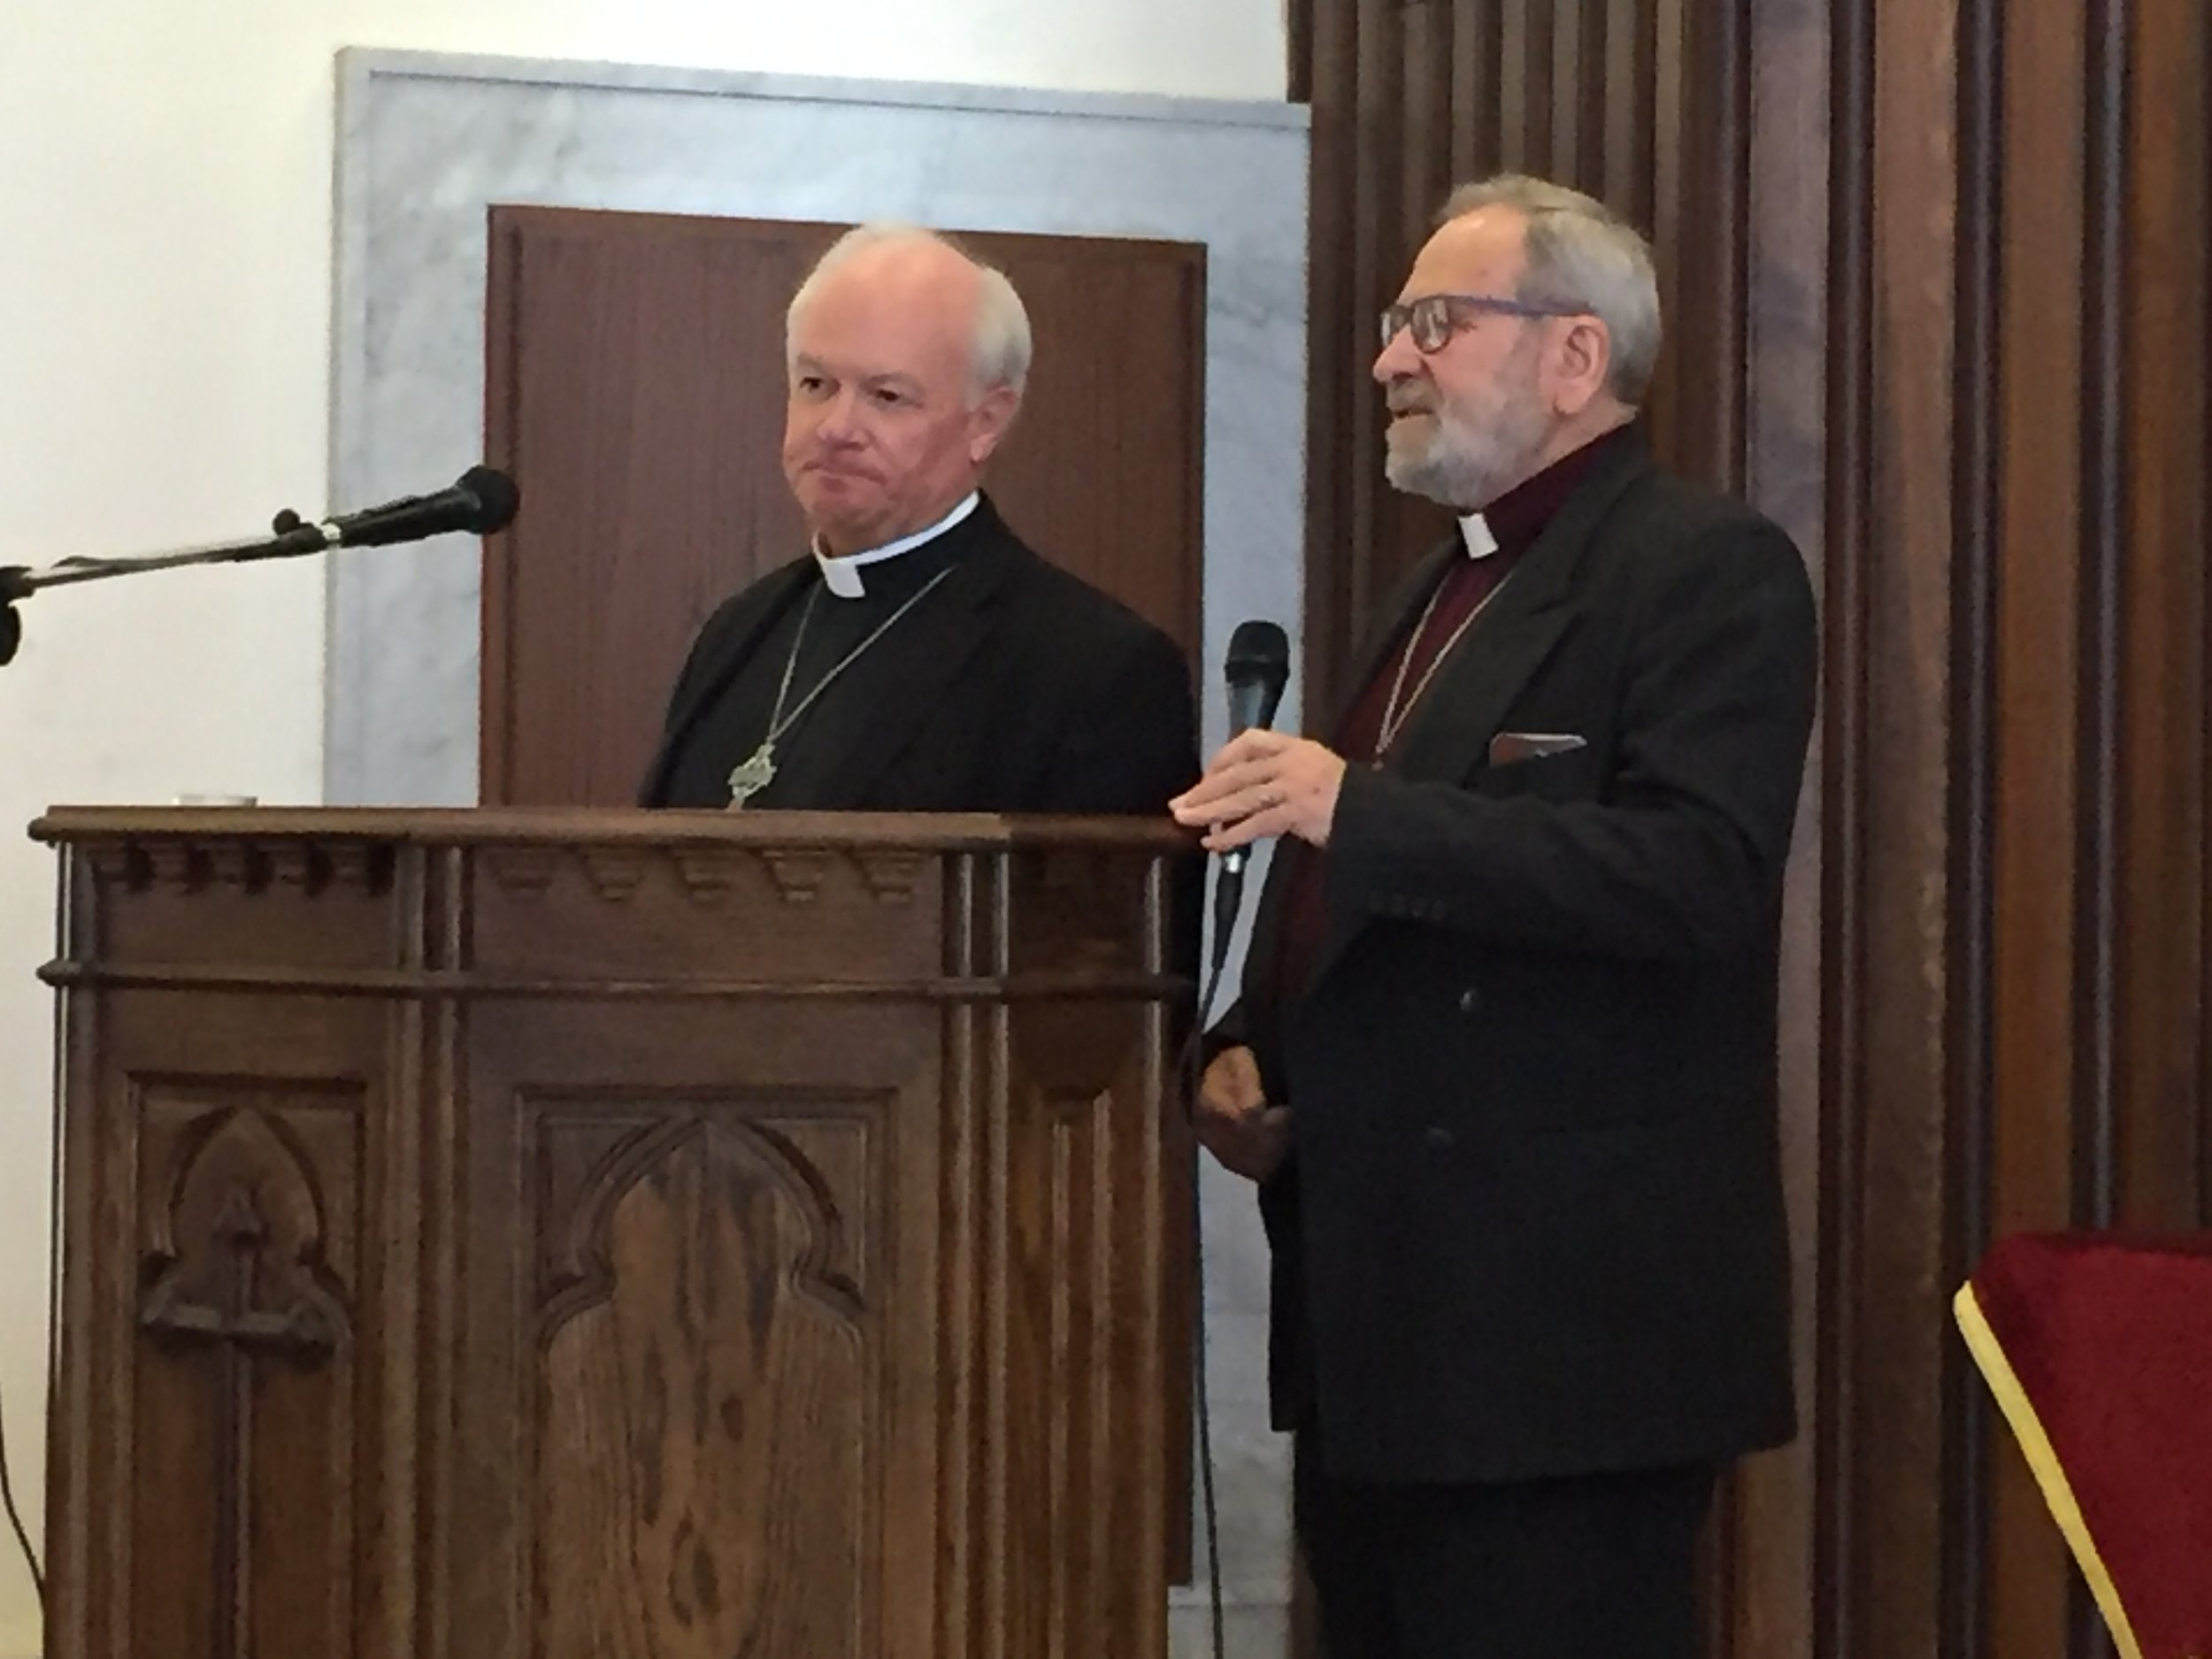 Rev. Jack Baca preaches in Homs church as Rev. Nuhad Tomeh translates